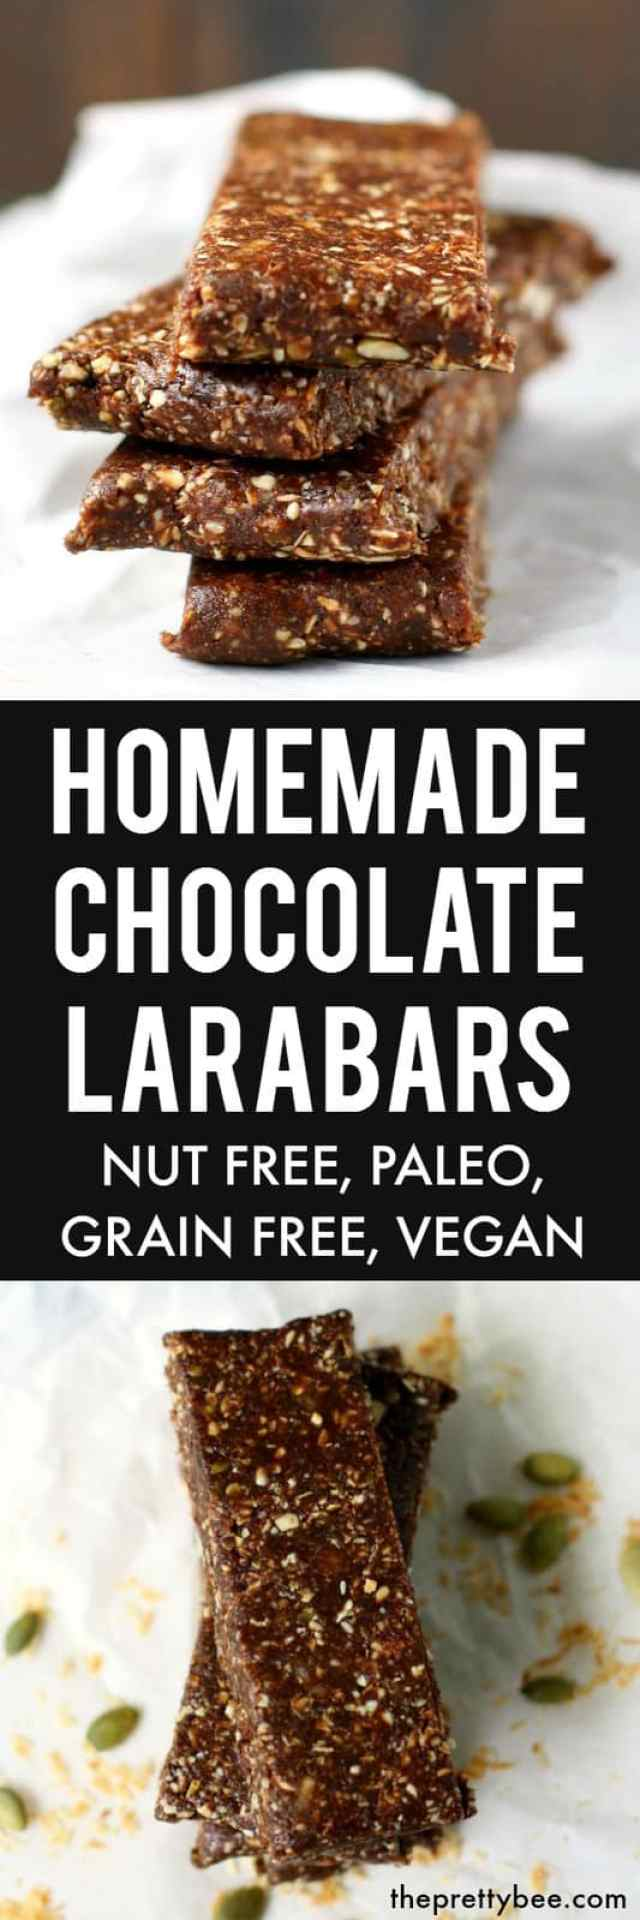 Nut free chocolate larabar recipe